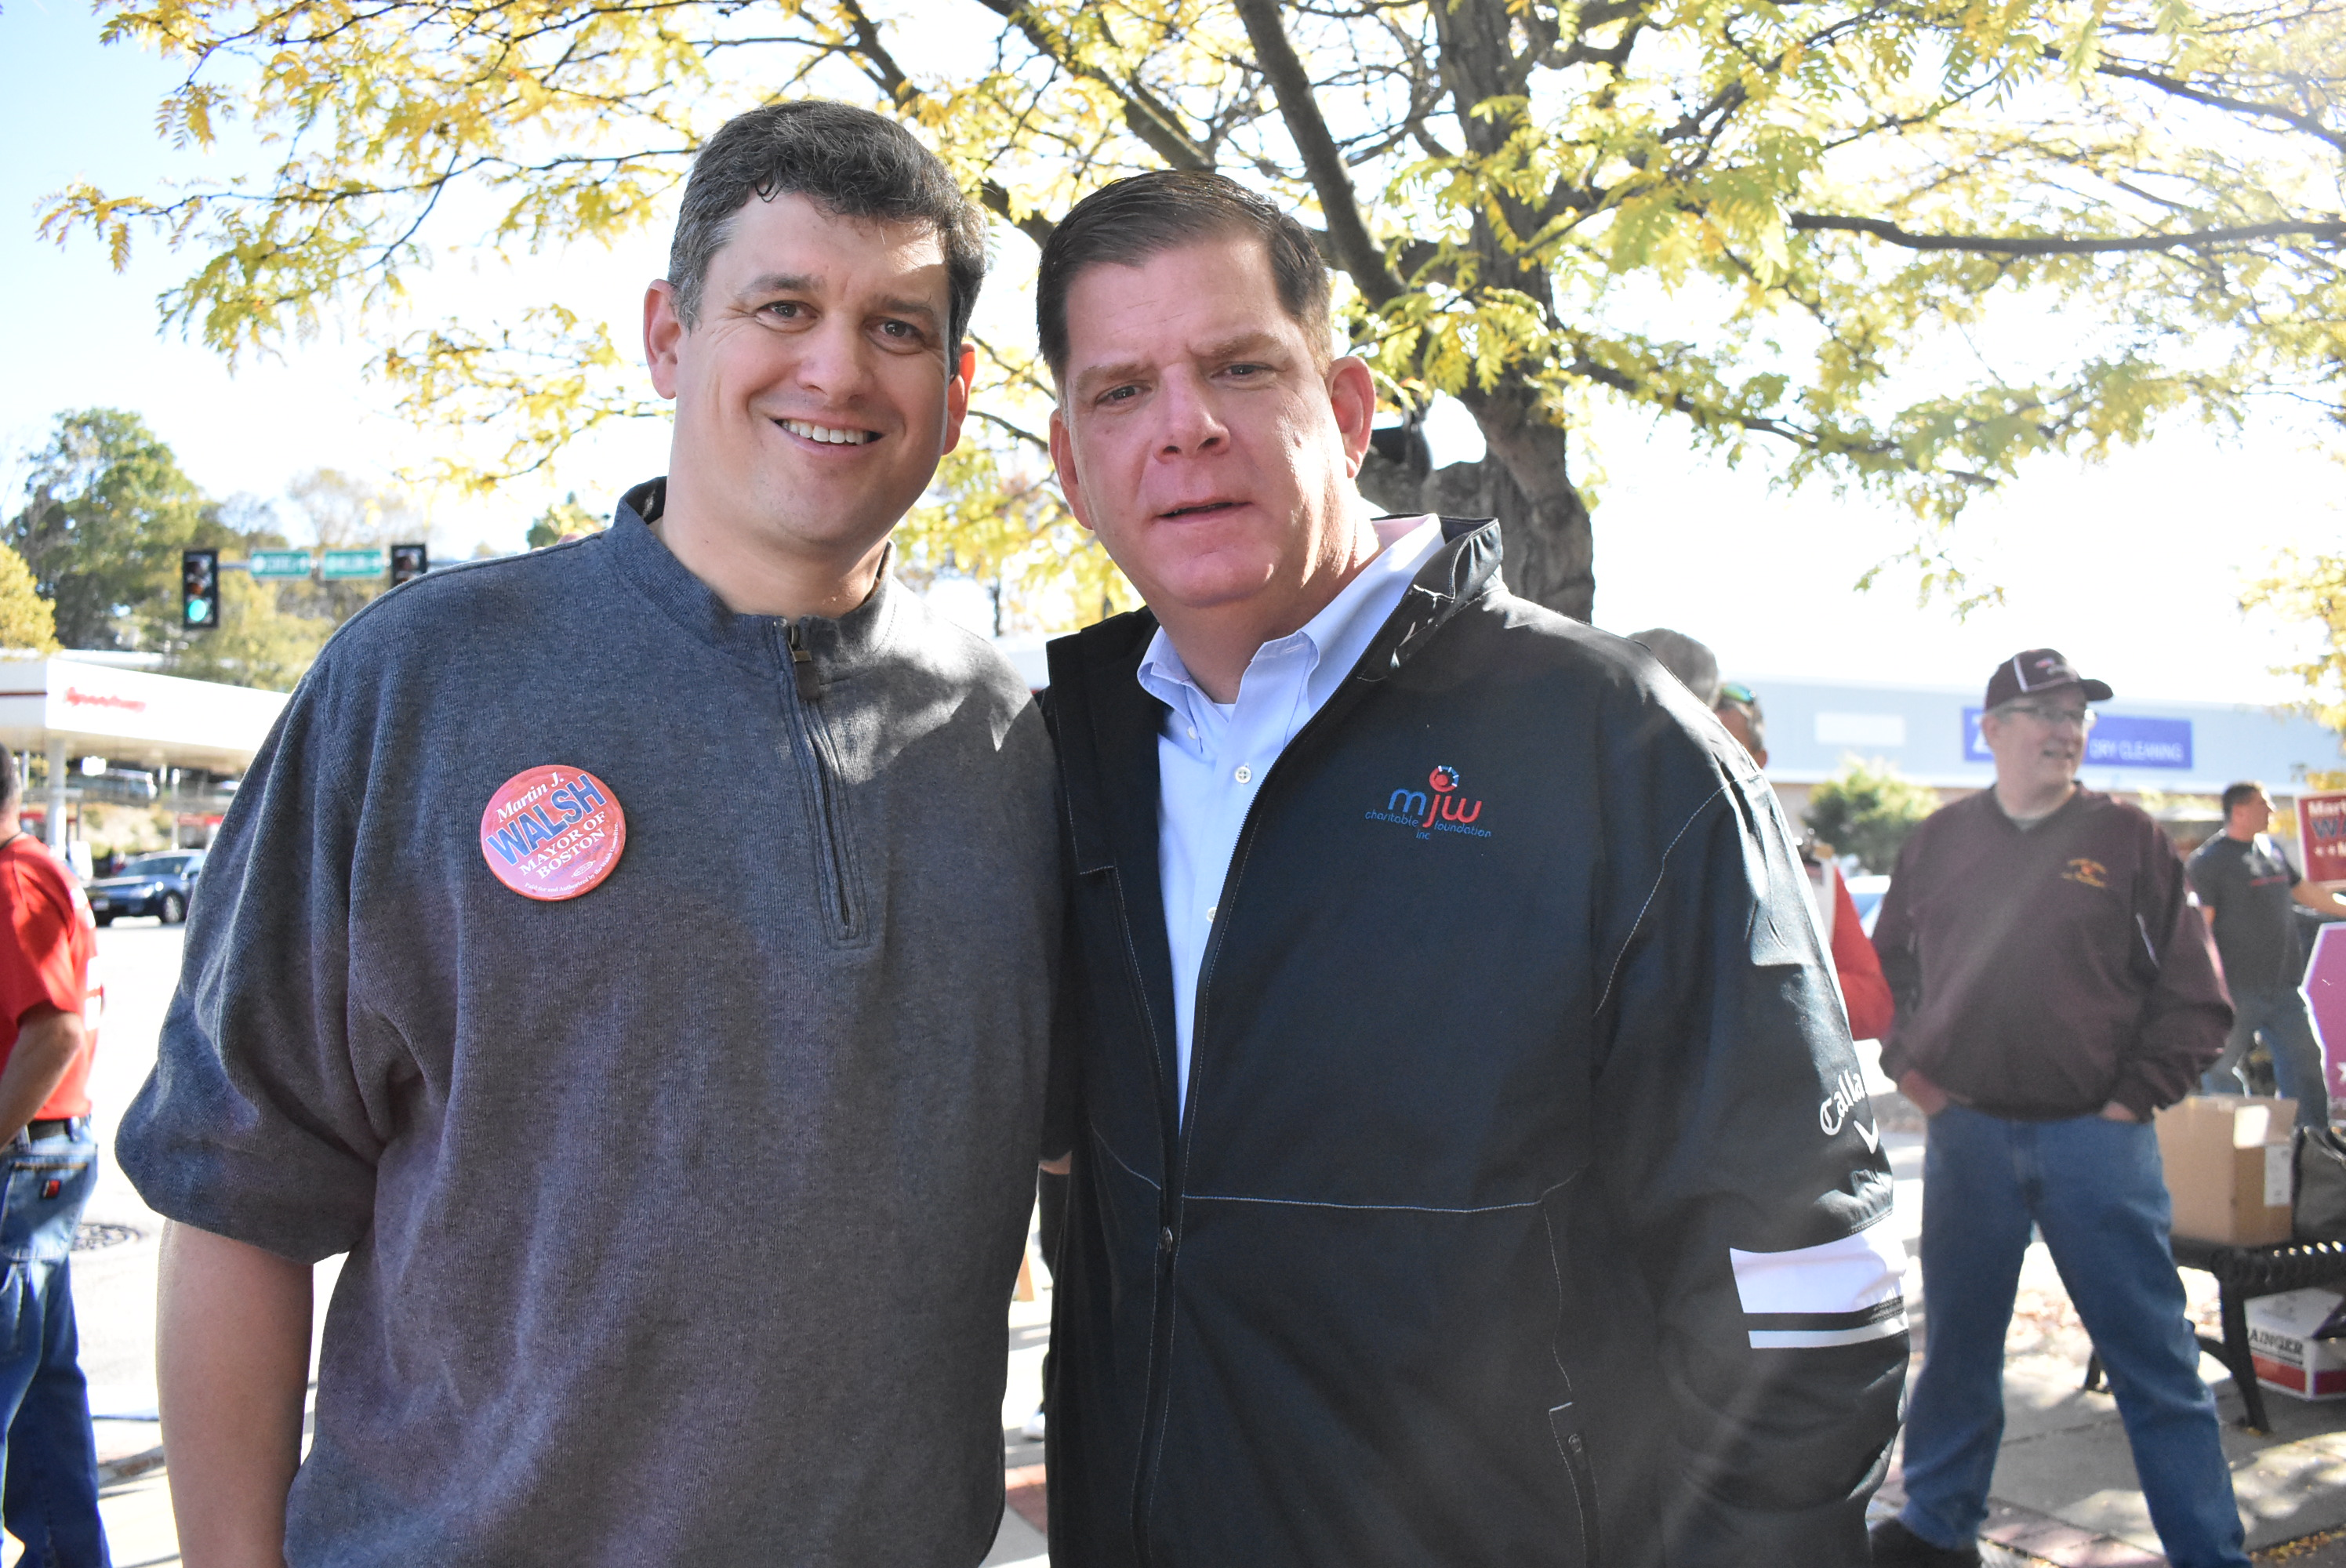 John Connolly with Marty Walsh